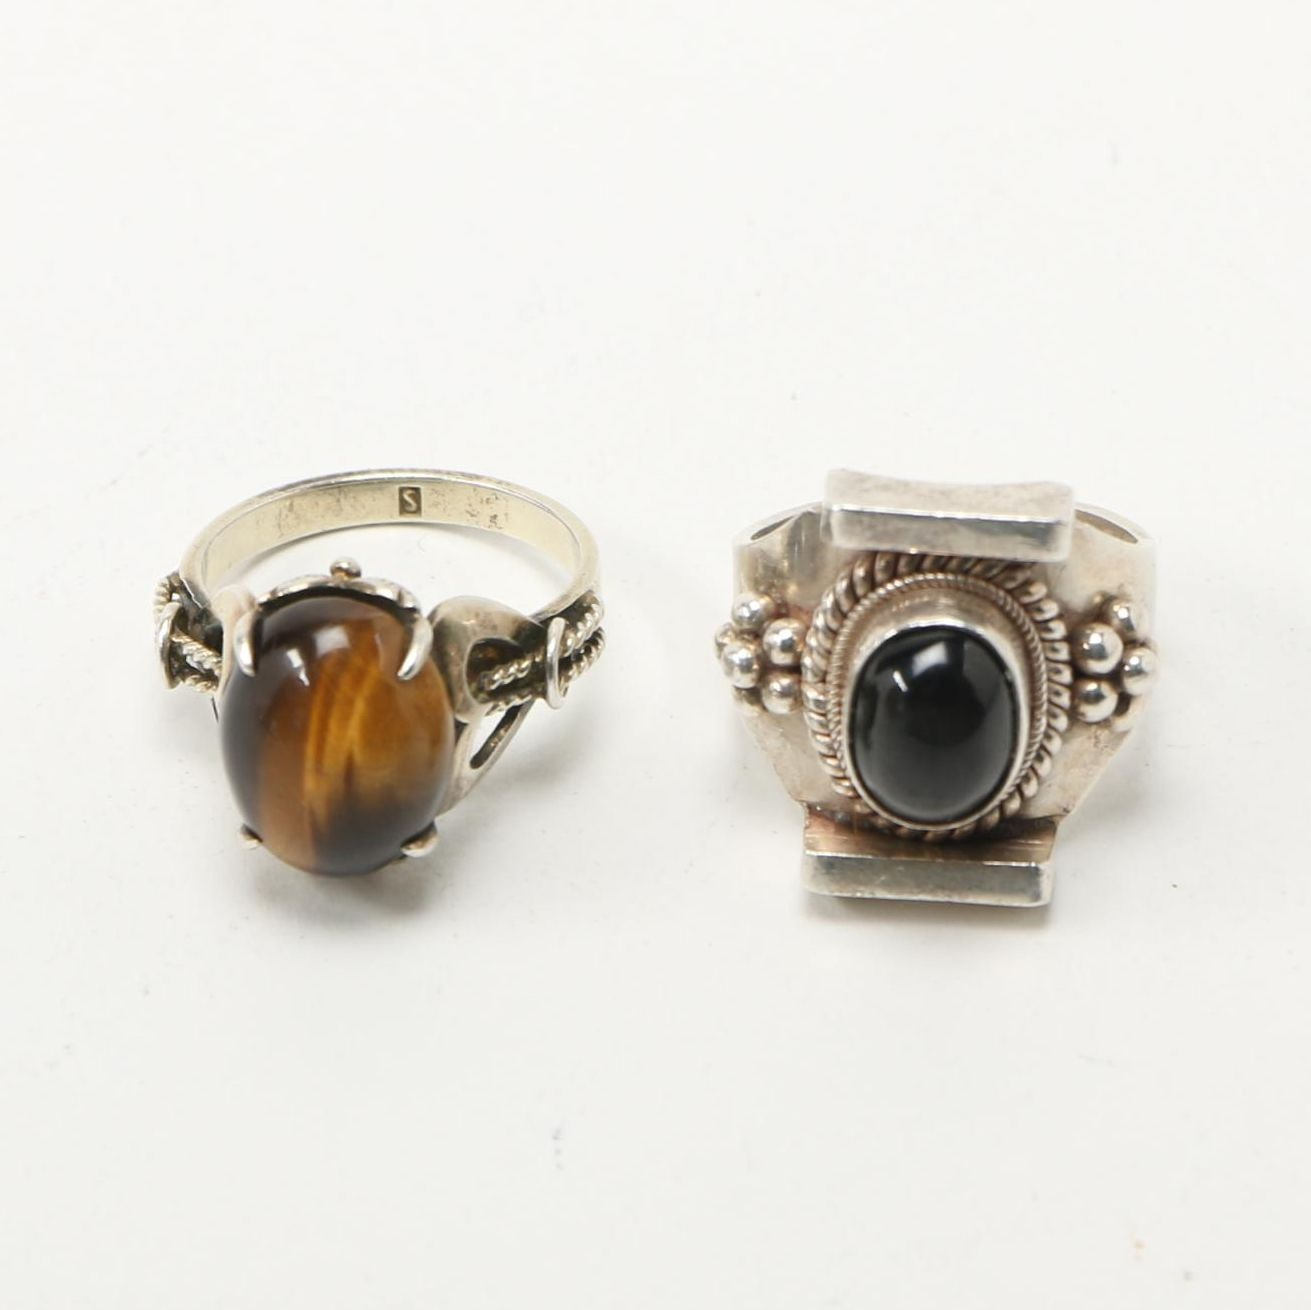 Sterling Silver Rings With Tiger's Eye and Obsidian